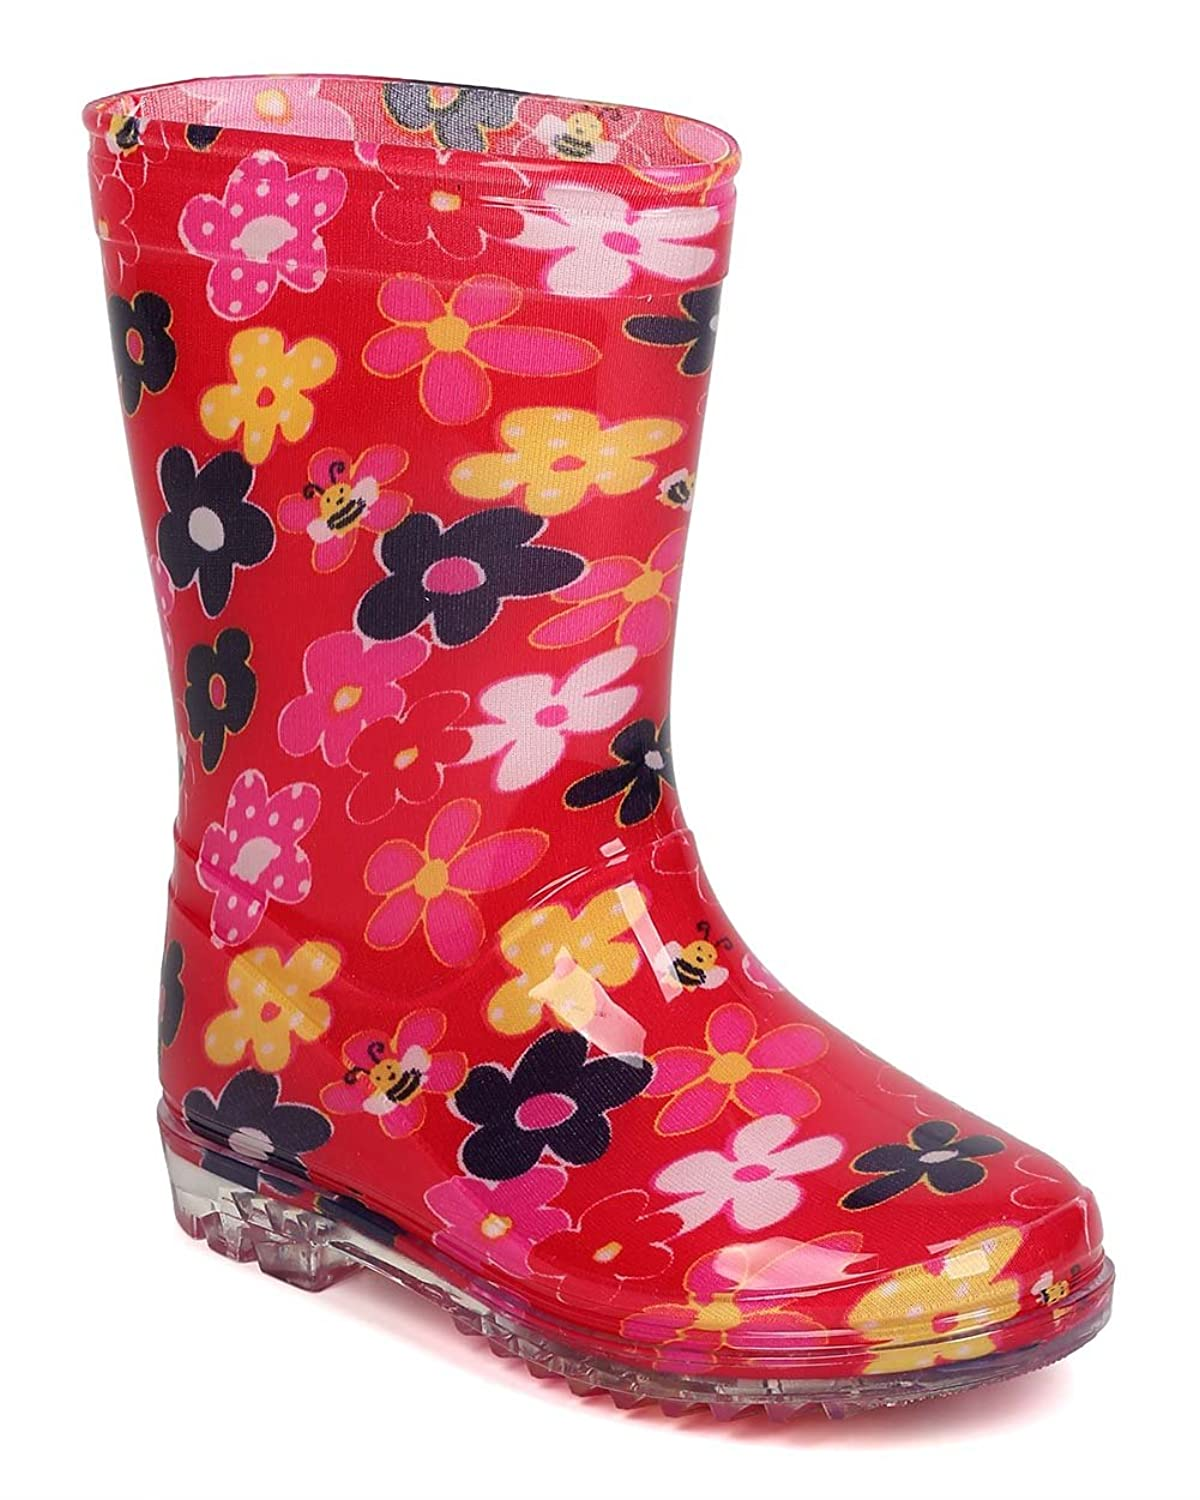 Alrisco FB10 PVC Floral Pattern Clear Lug Sole Rain Boot (Toddler Girl) - Red